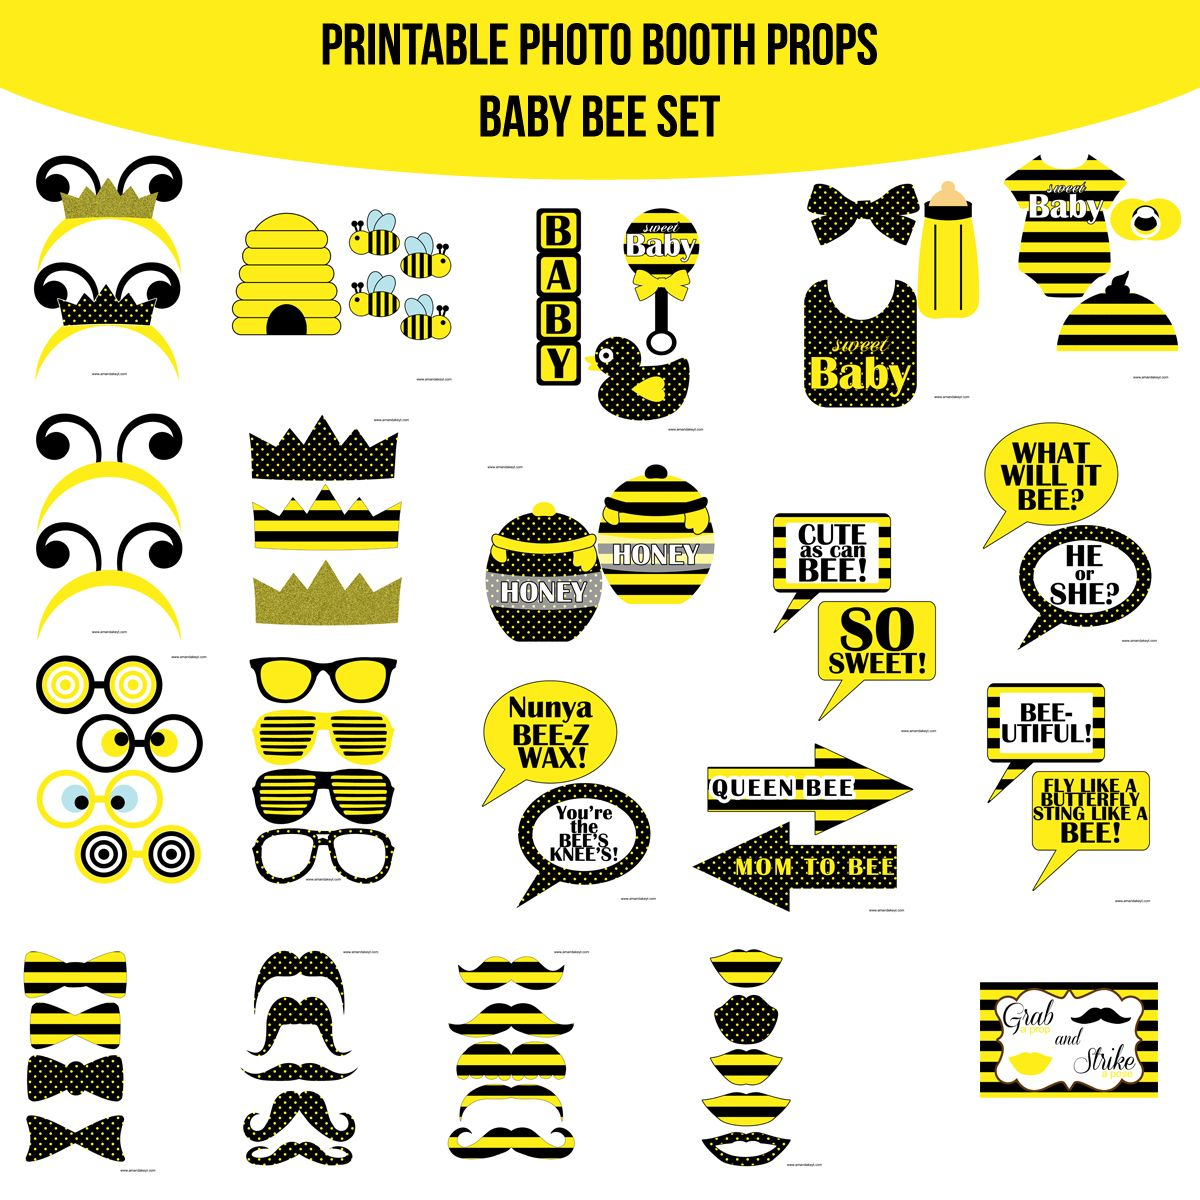 Instant Download Baby Bee Mom To Bee What Will It Bee Printable Photo Booth Prop Set